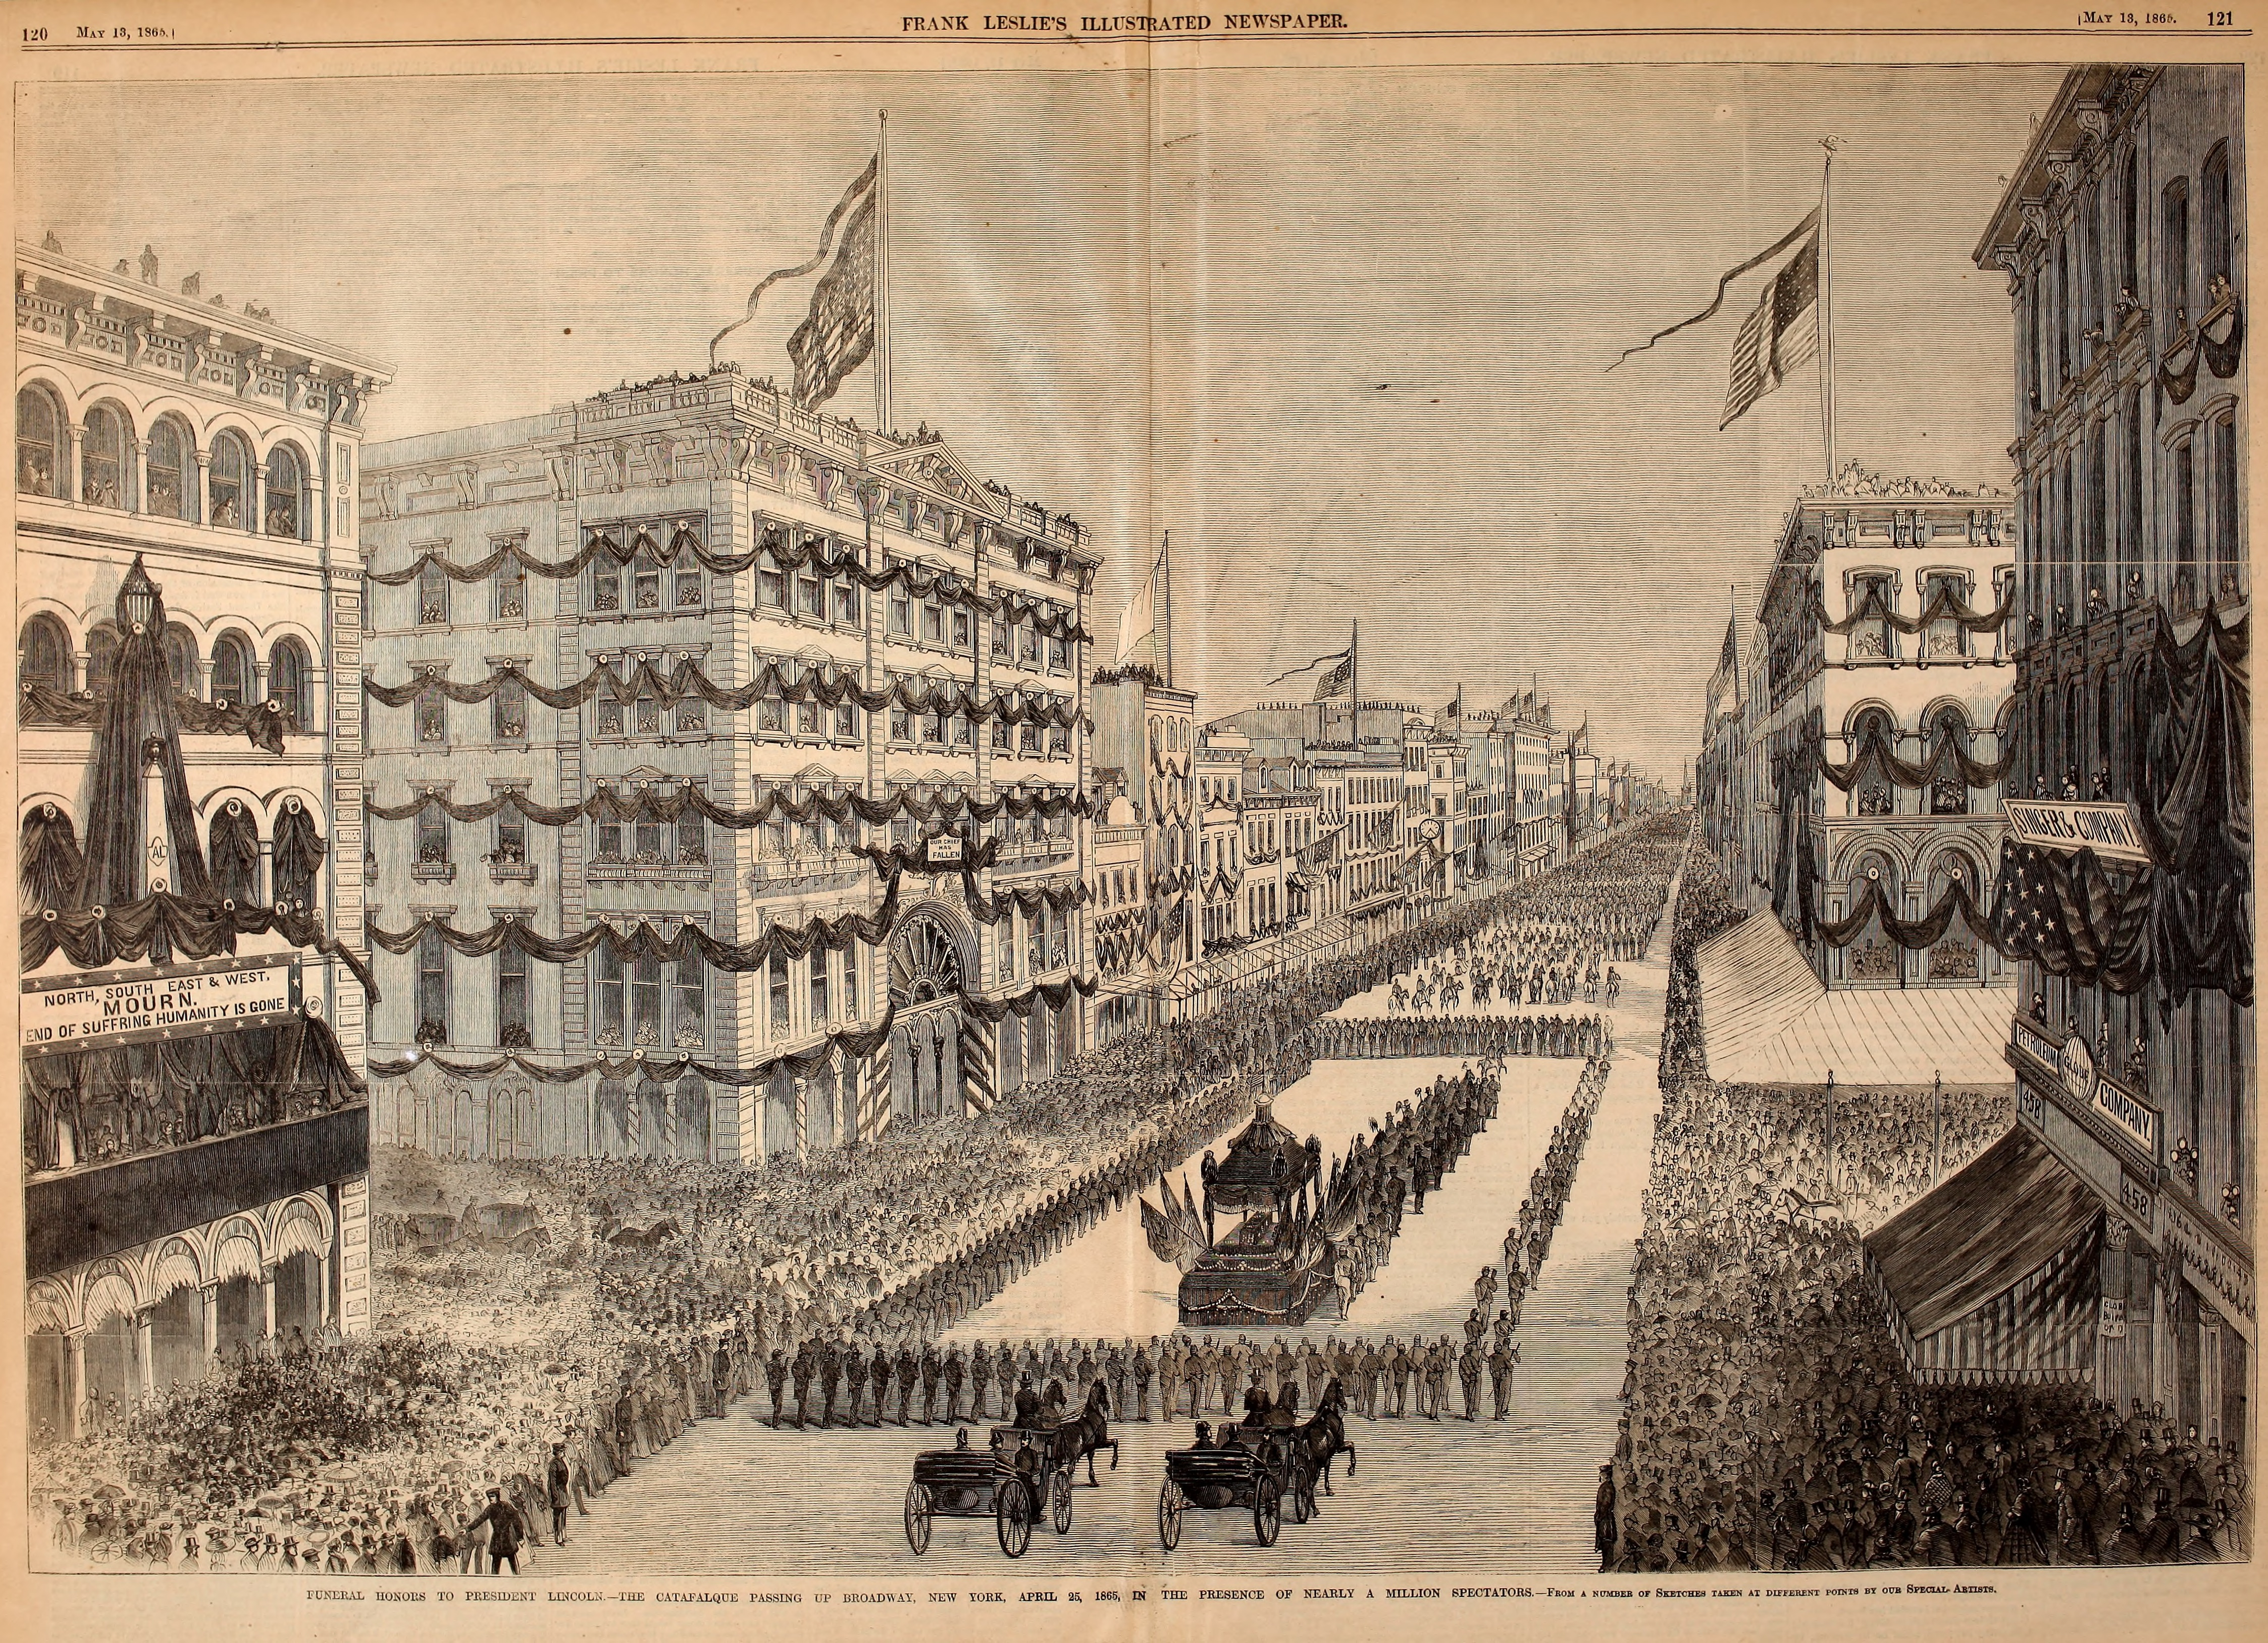 President Lincoln's Funeral Procession in New York City - Frank Leslie's Illustrated Newspaper Drawing